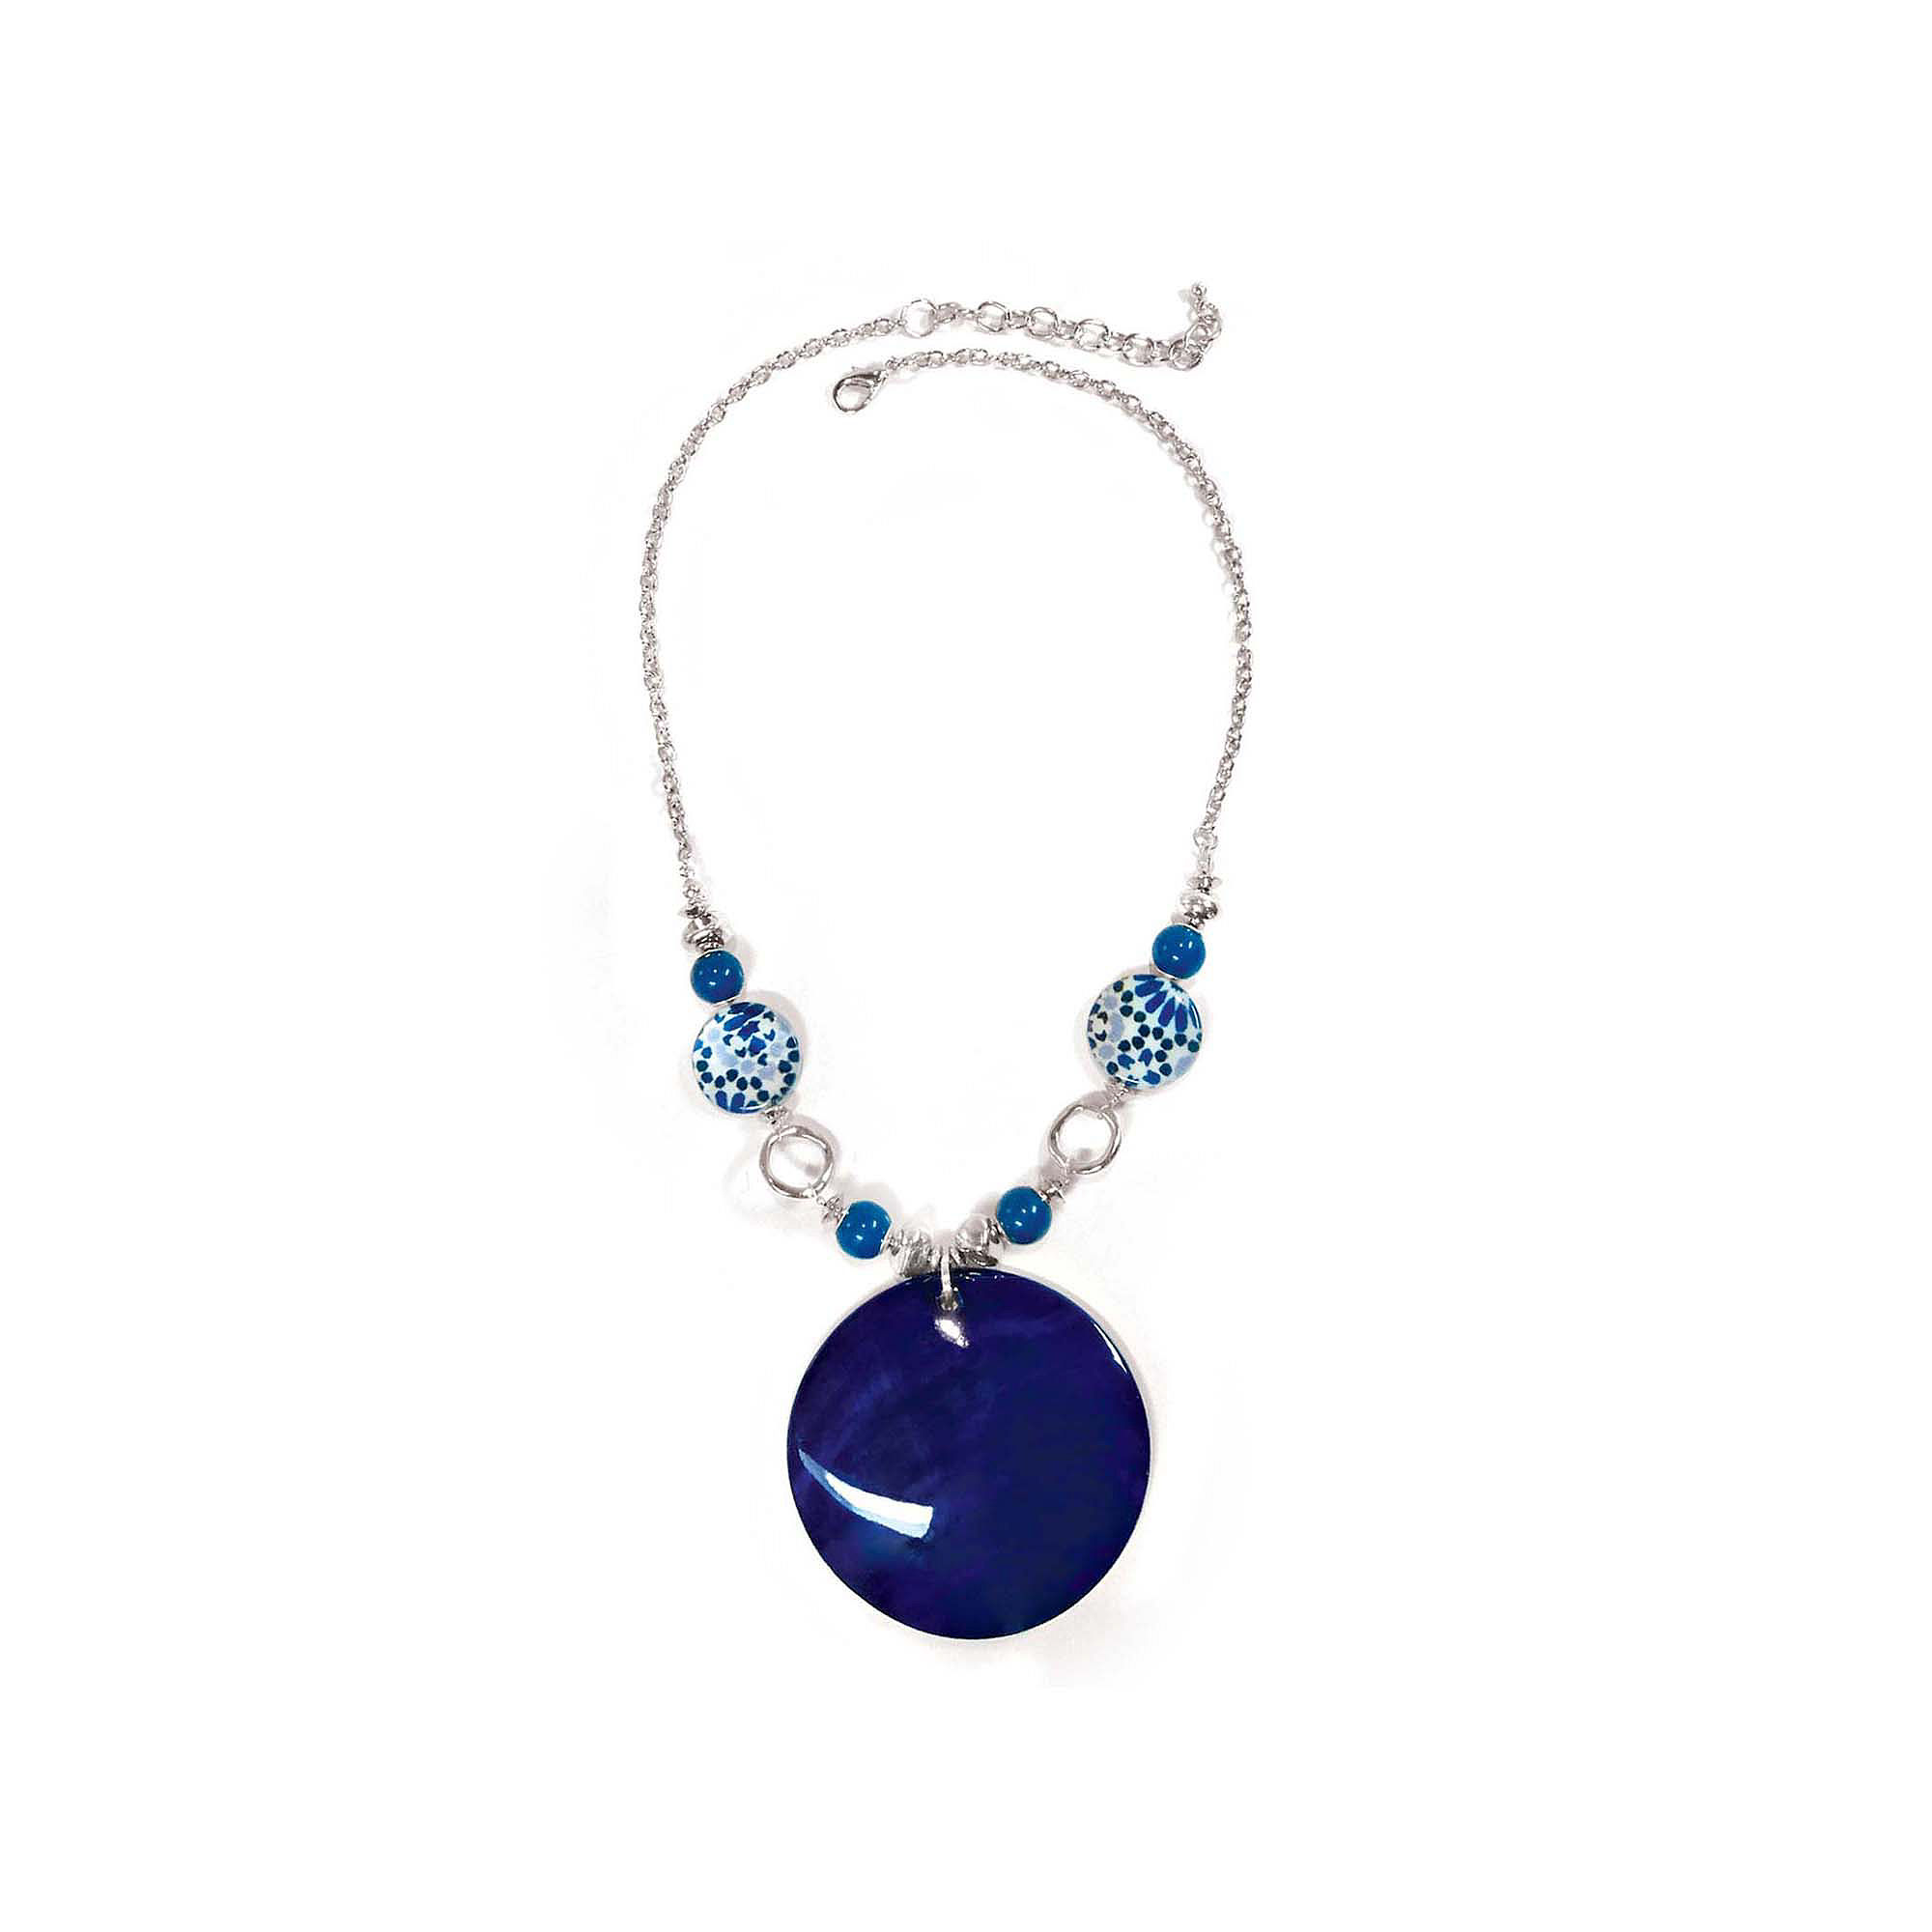 Studio By Carol Dauplaise Silver-Tone Blue Disc Pendant Necklace